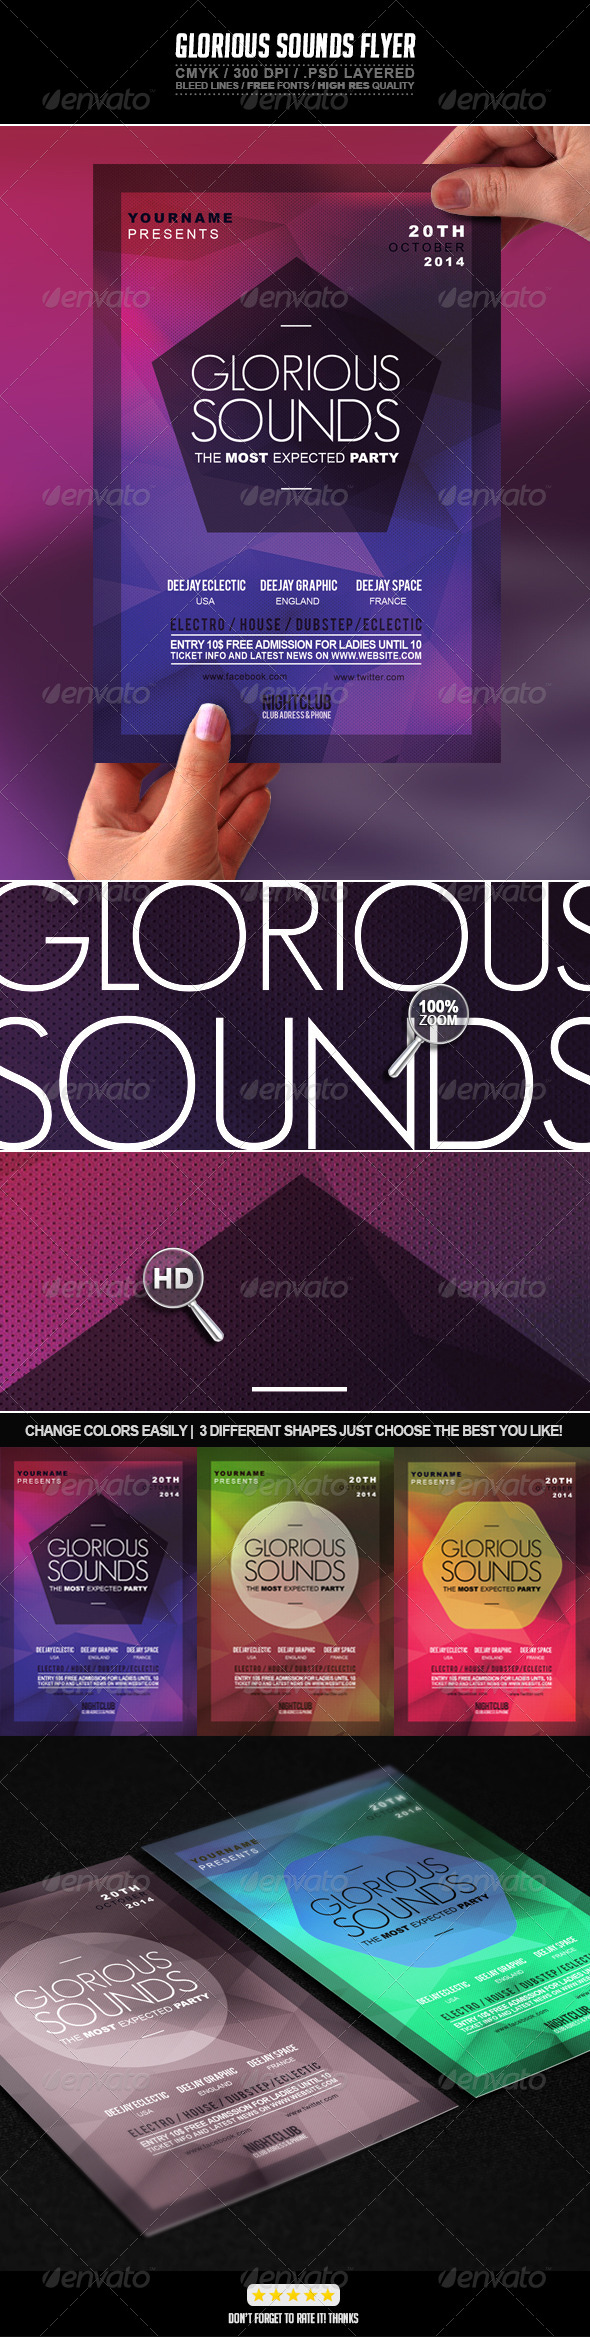 GraphicRiver Glorious Sounds Flyer 7167114